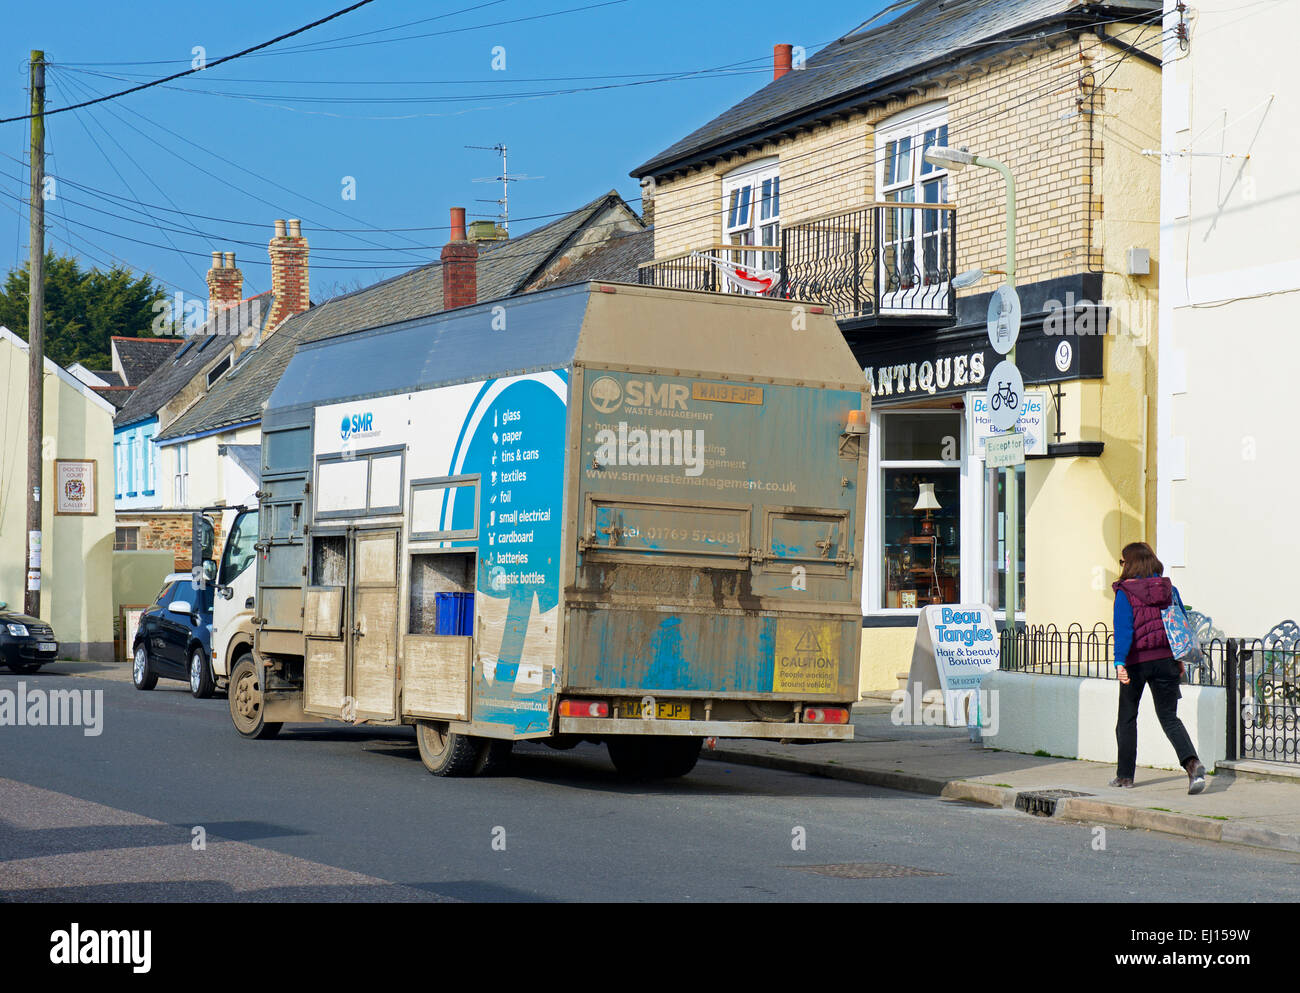 Recycling van in Appledore, Devon. England UK - Stock Image